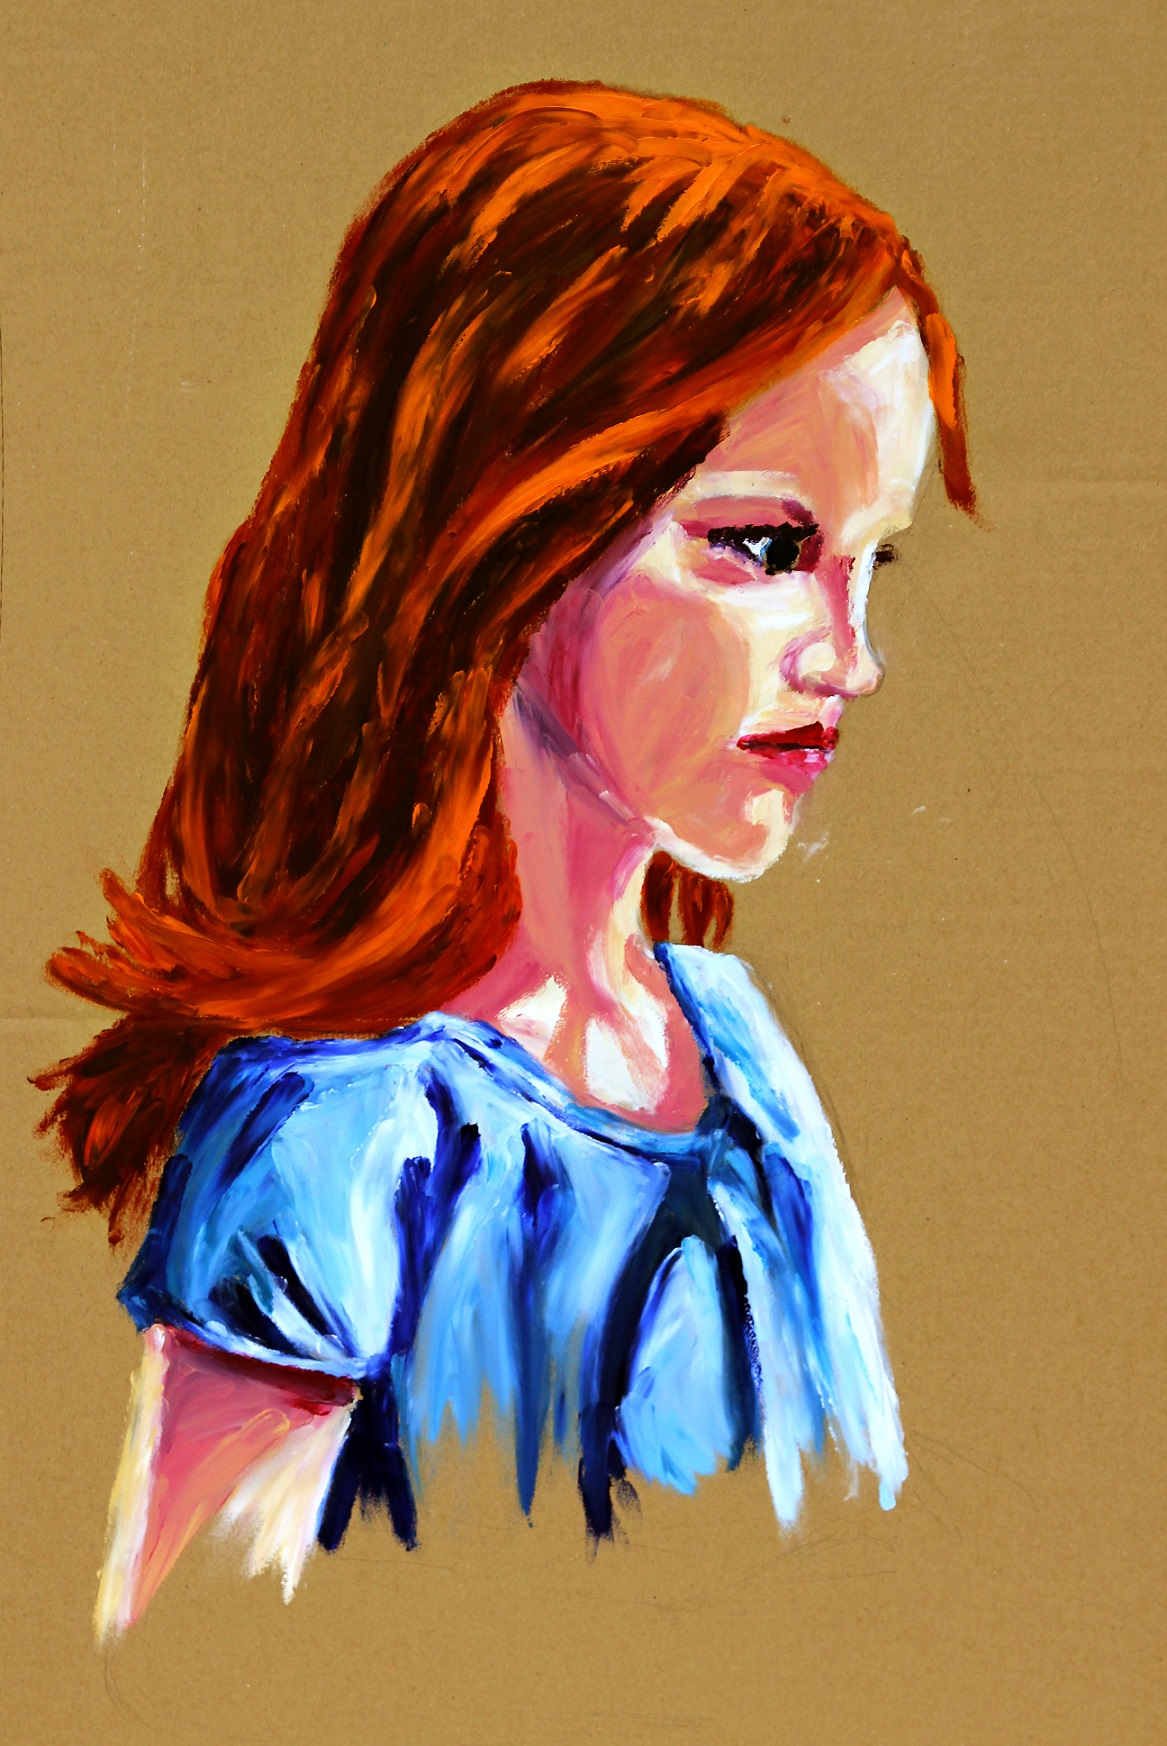 Girl with red hair 750